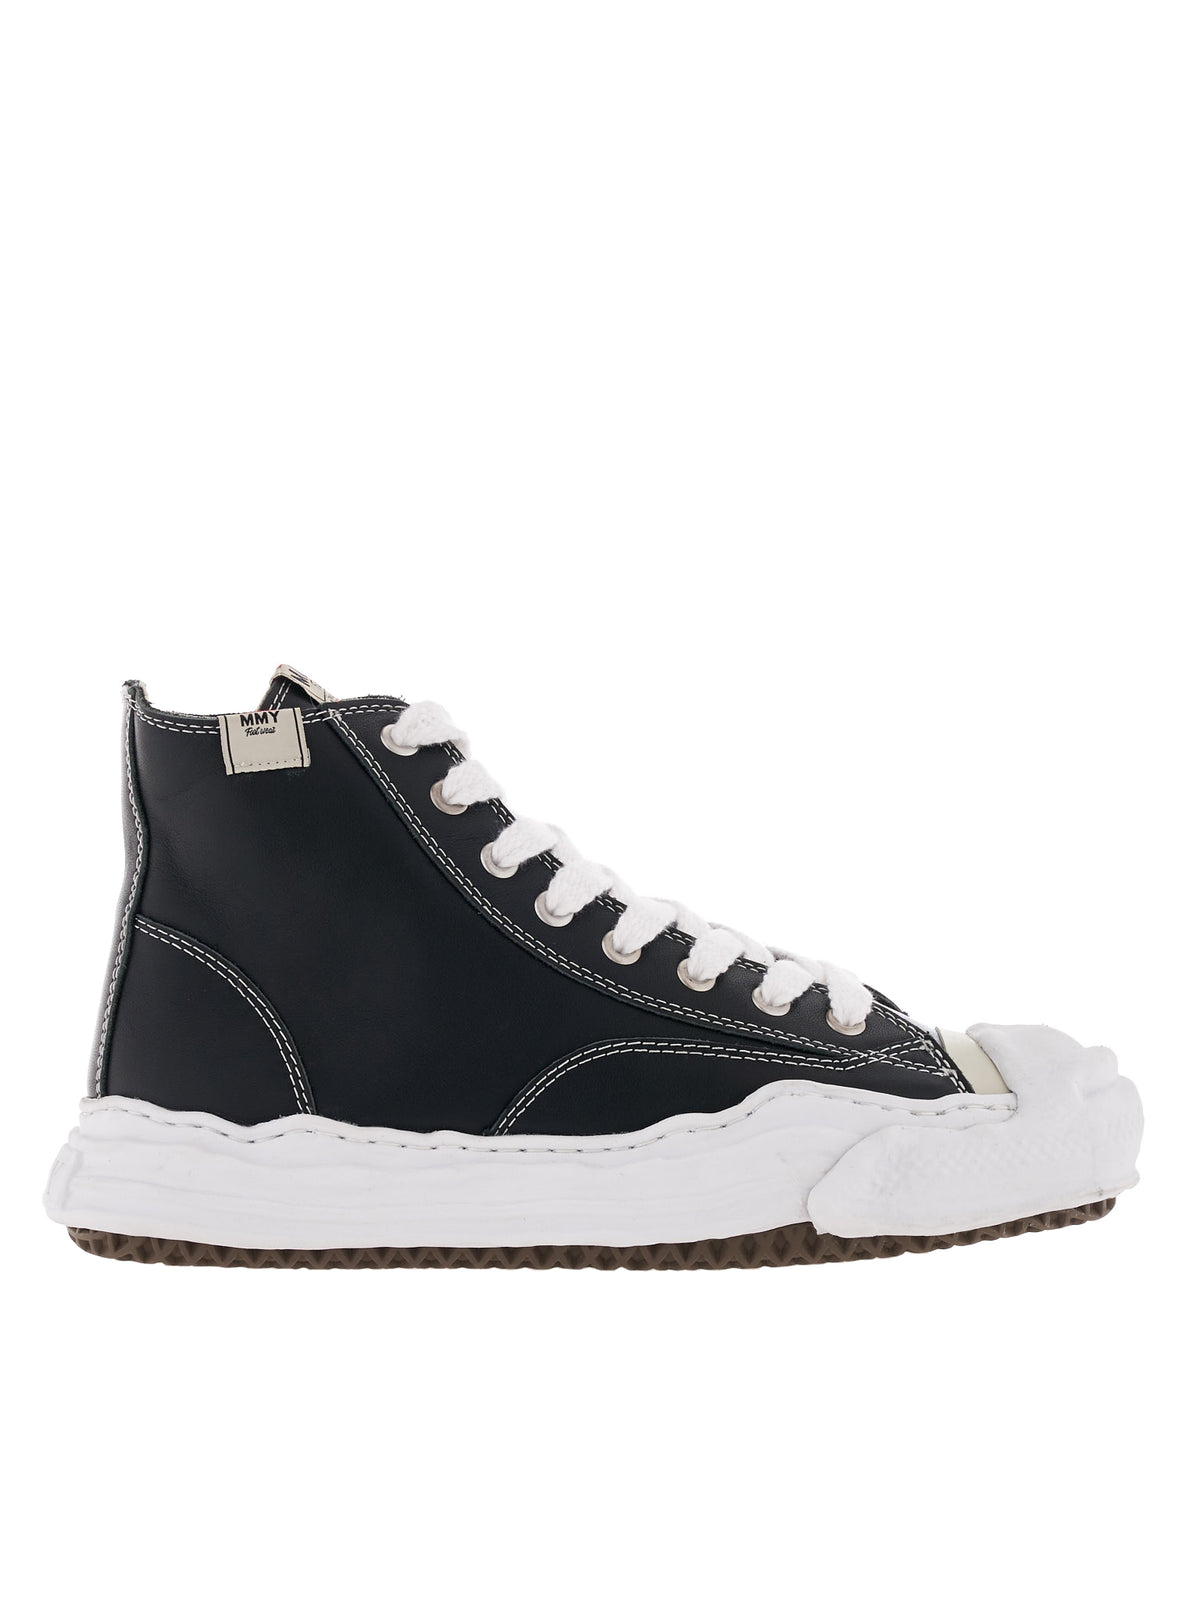 Leather Hightop Sneaker (A05FW703-BLACK)